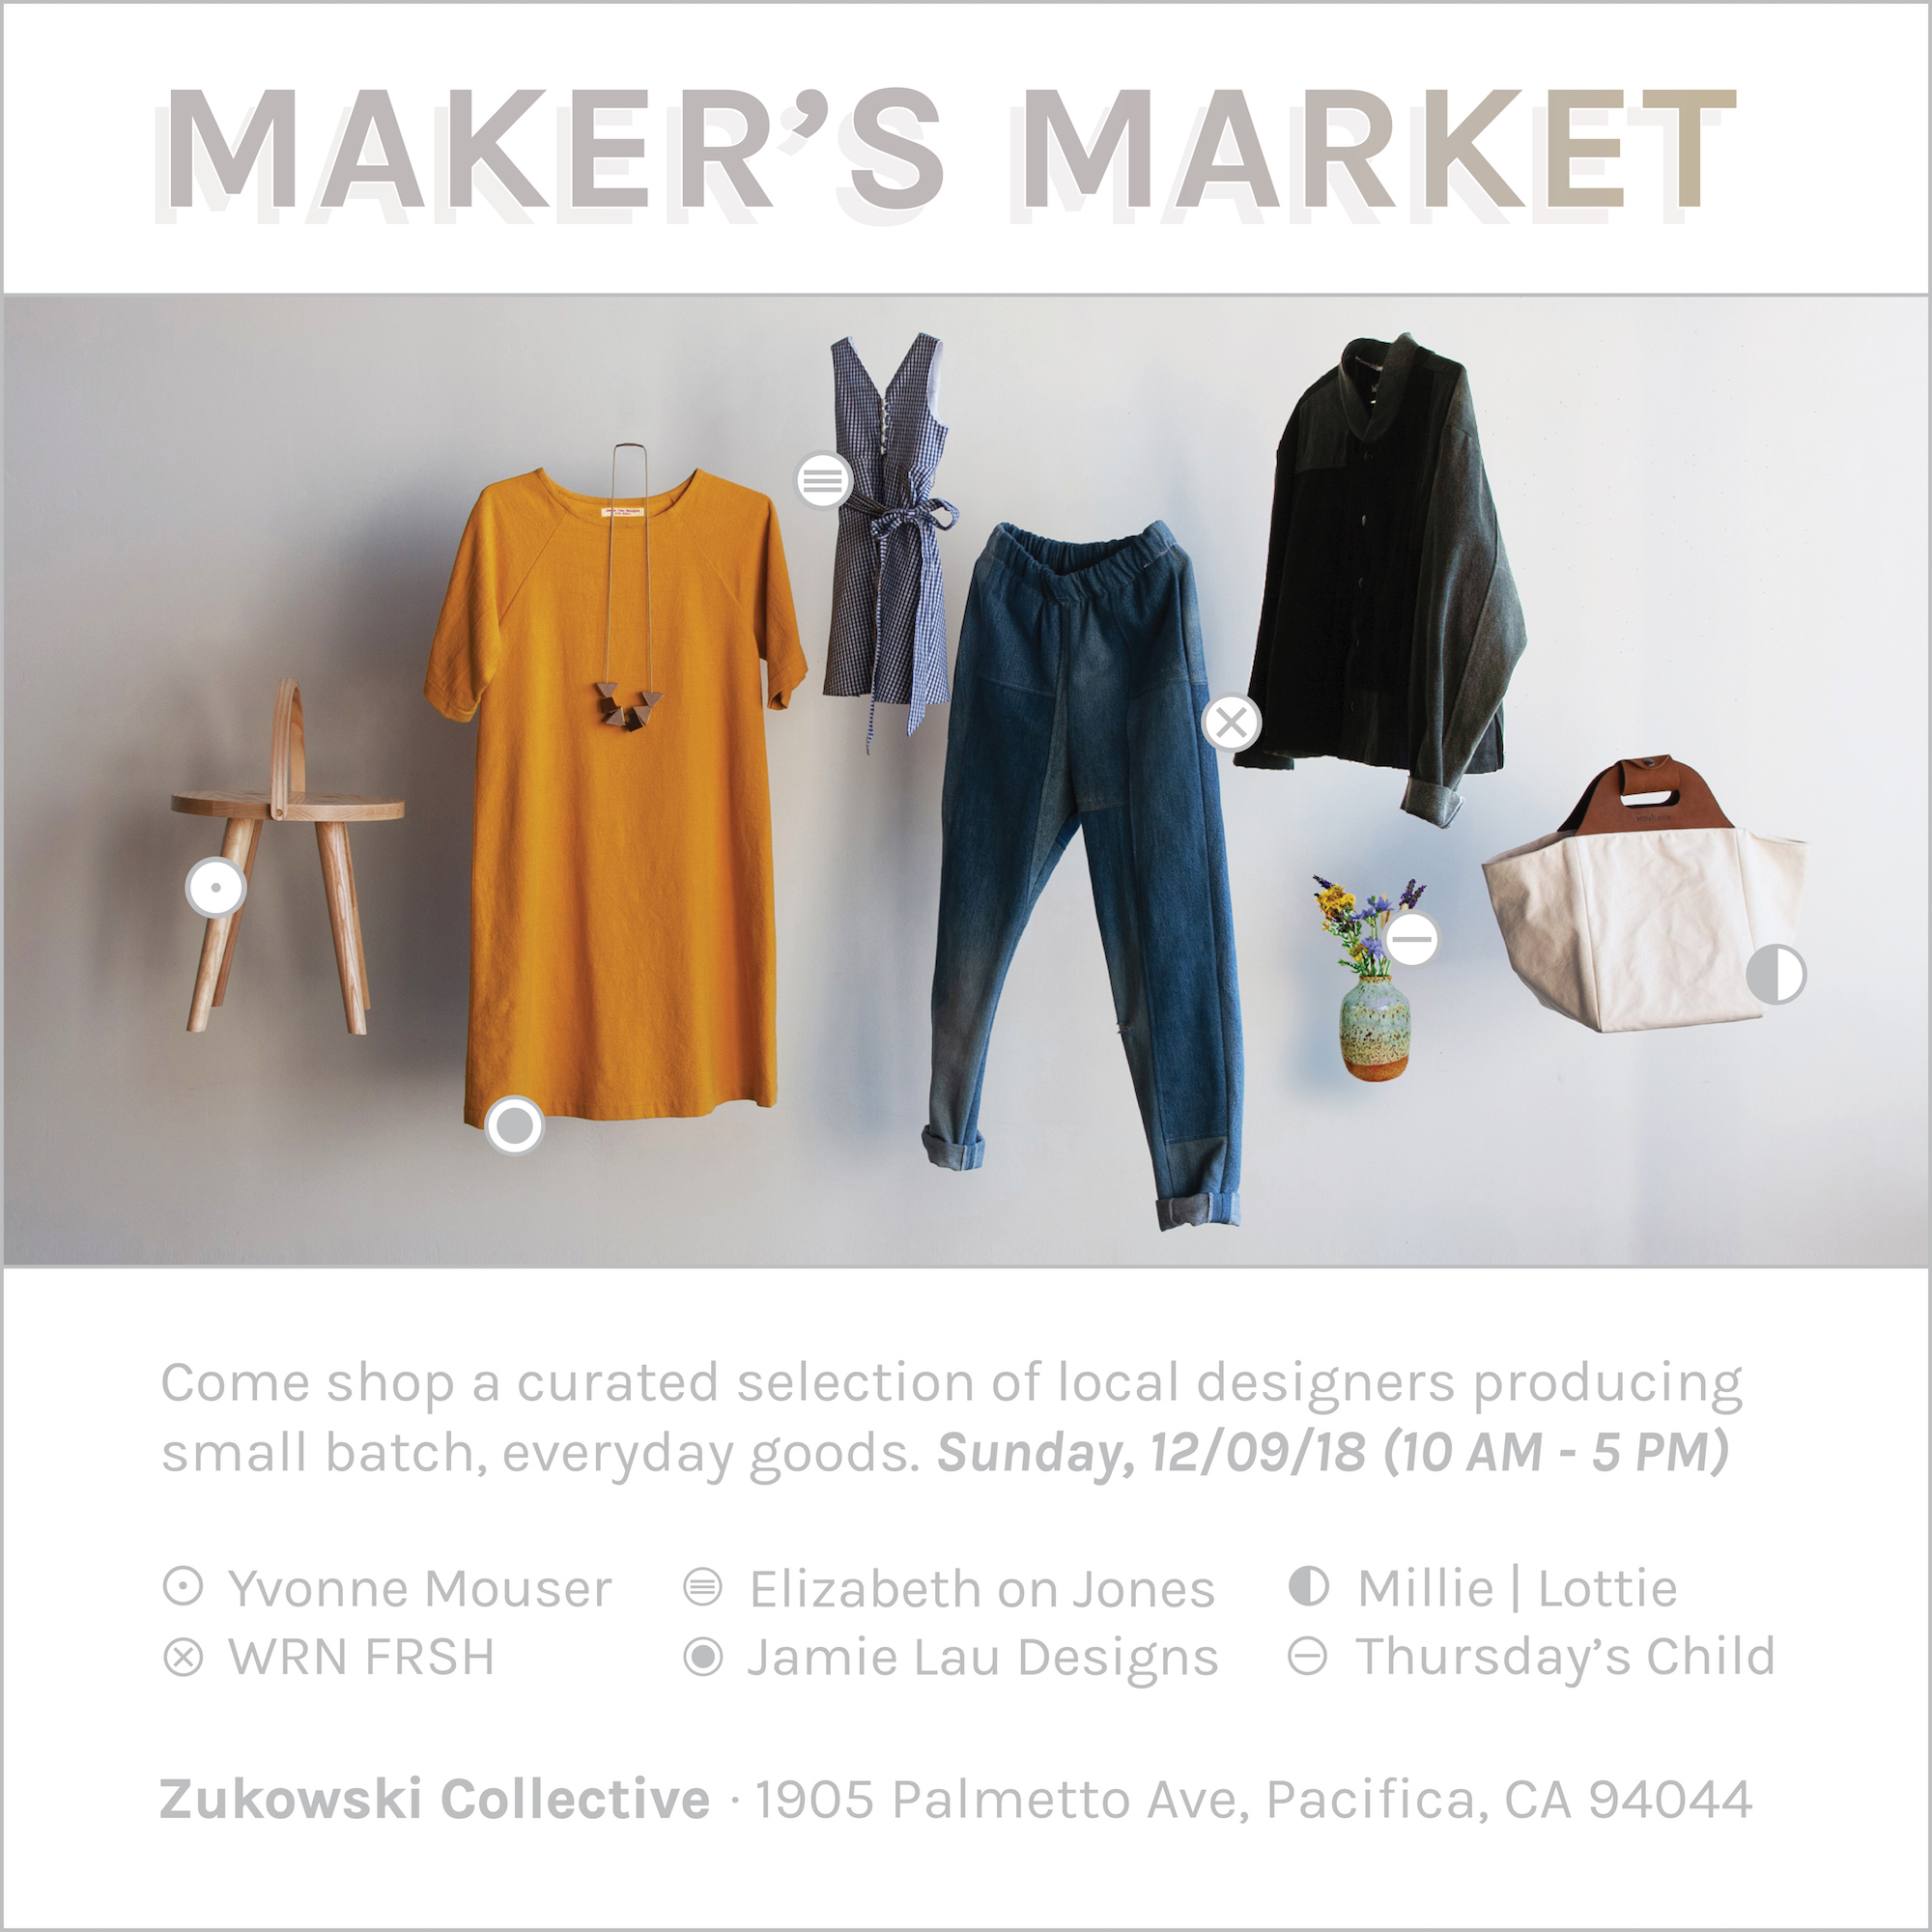 Maker's Market at Zukowski Collective